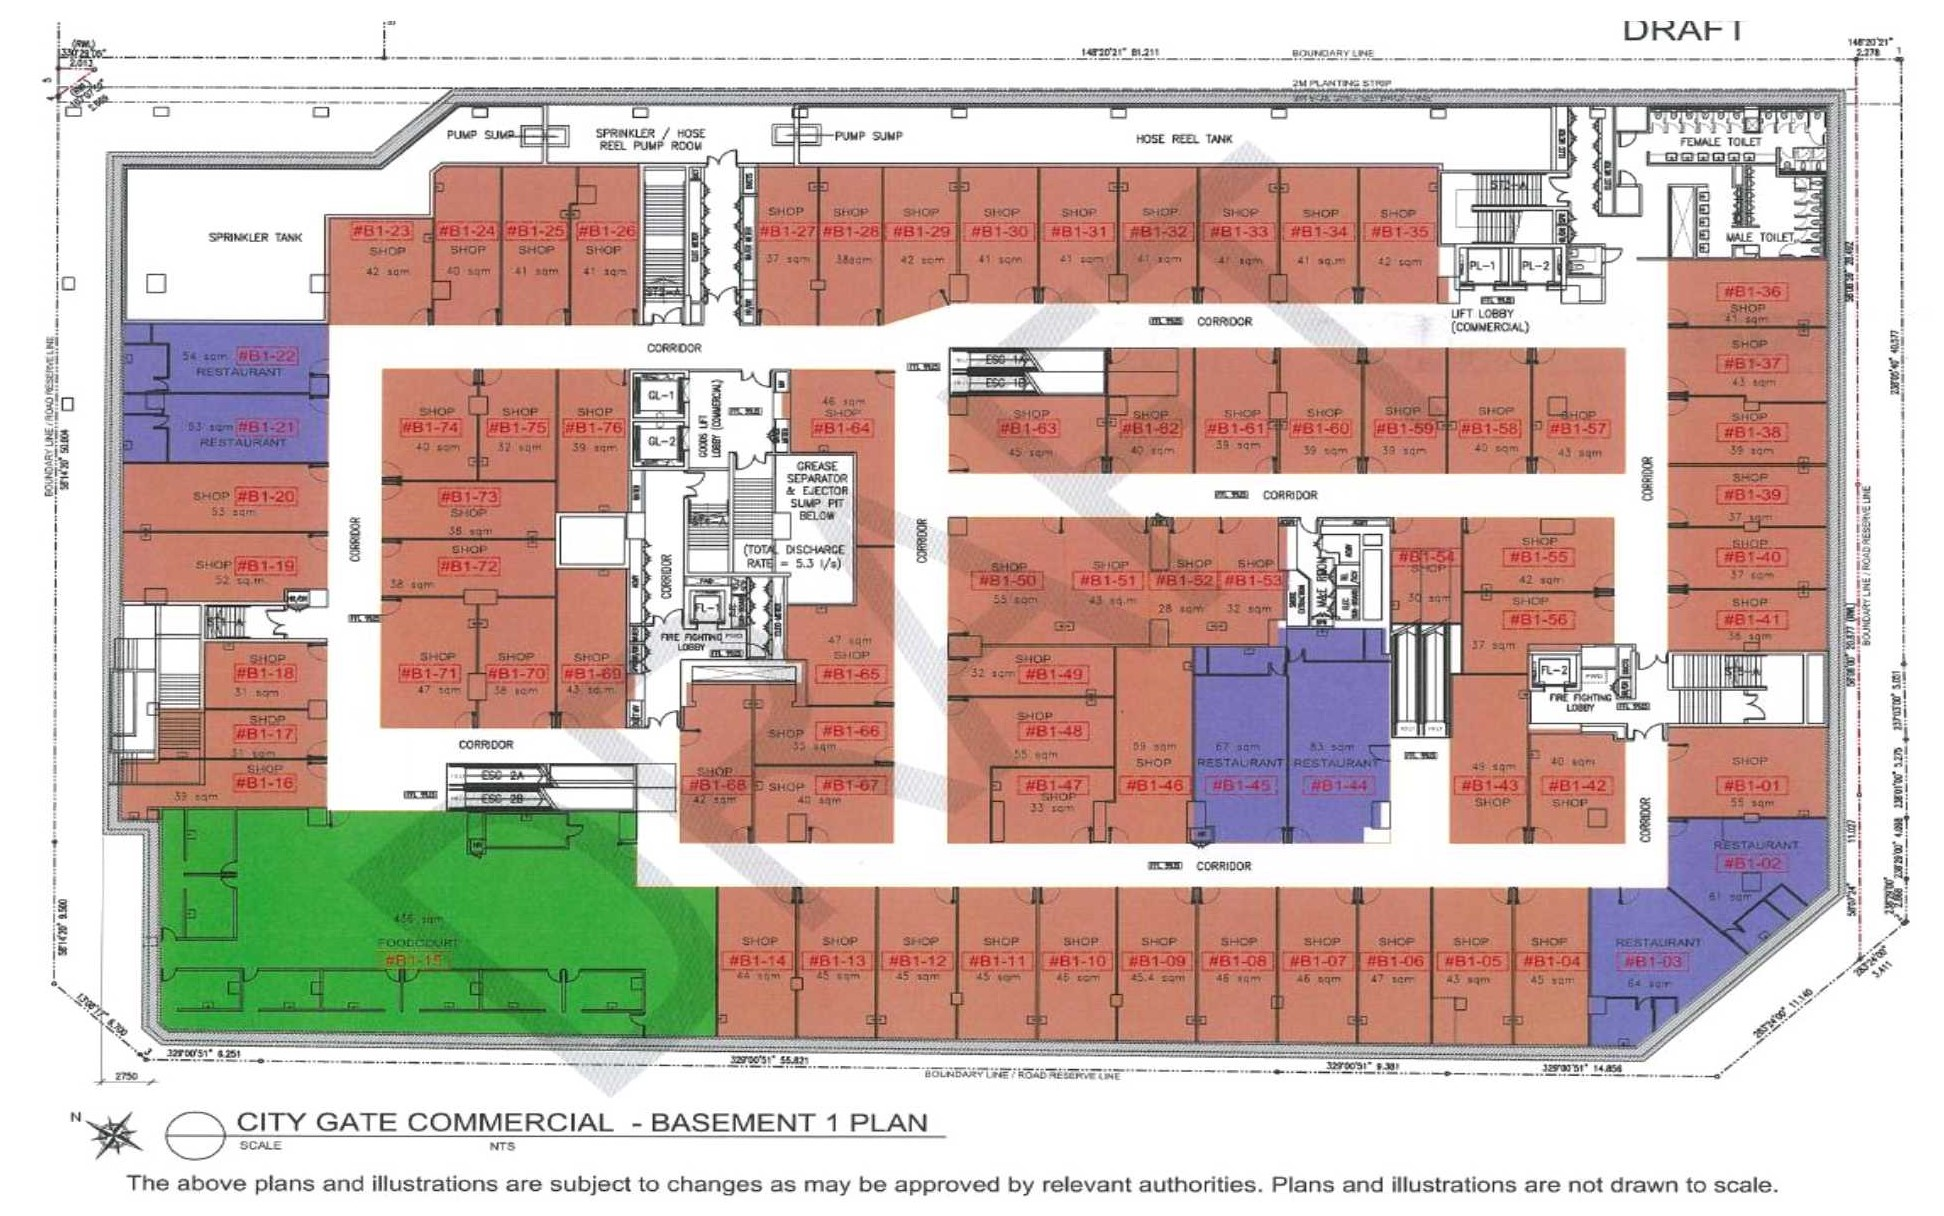 City Gate Commercial Site Plan 1